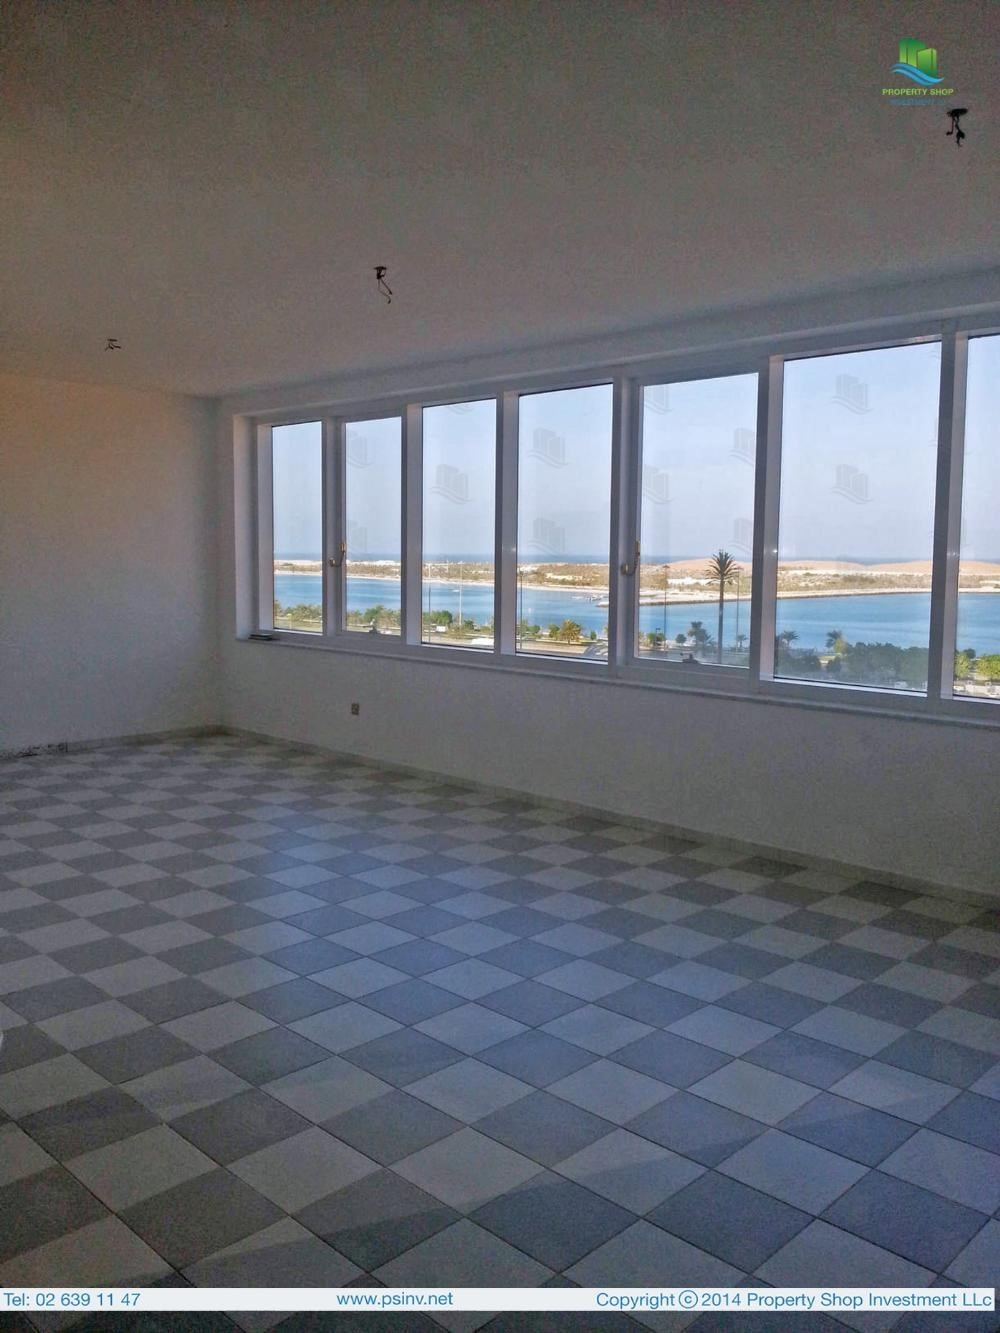 4 bedroom apartment for rent in alia tower khalifa 4 bedroom apartment for rent in sarria with pool and garden